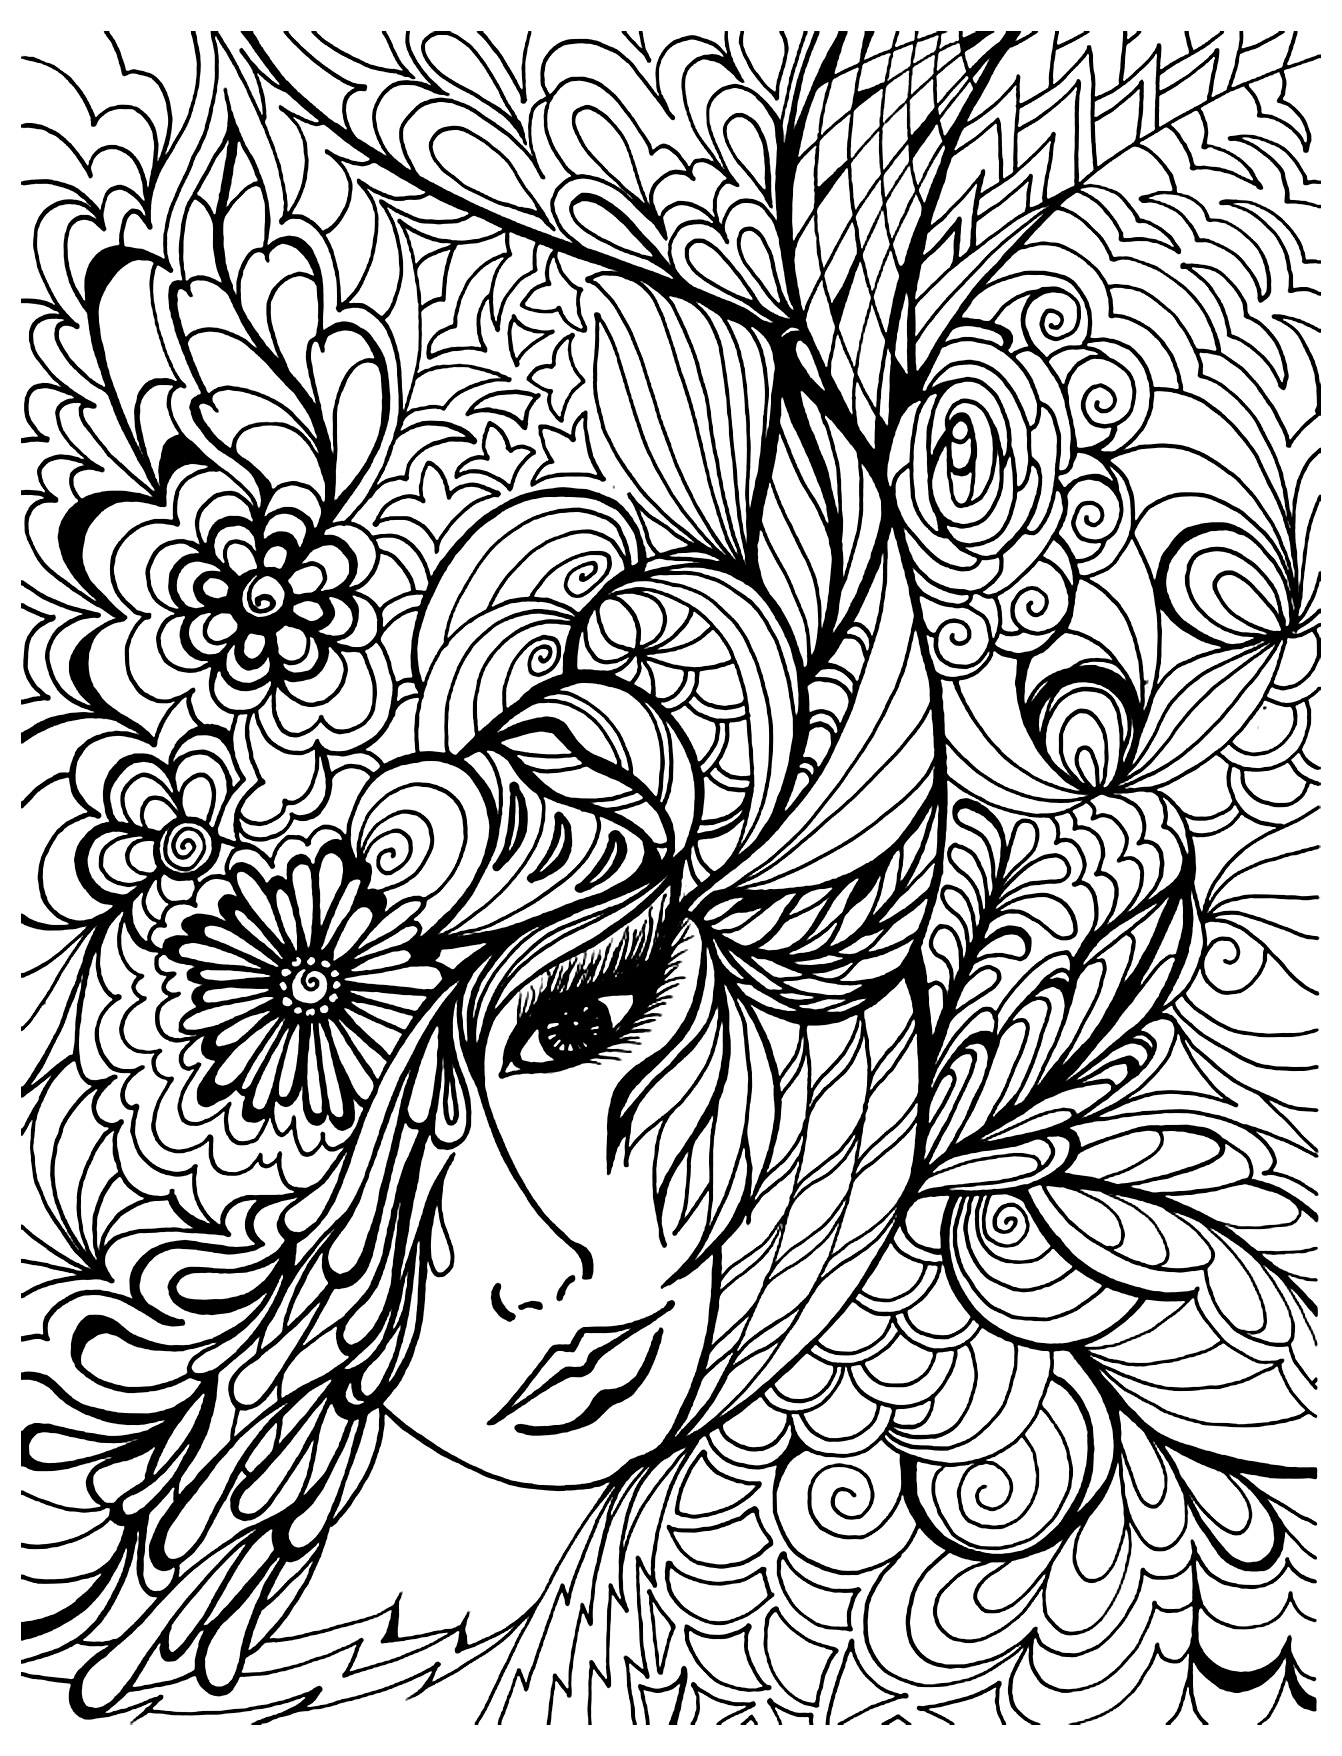 5 cool coloring books for grown ups - Coloring Book For Grown Ups